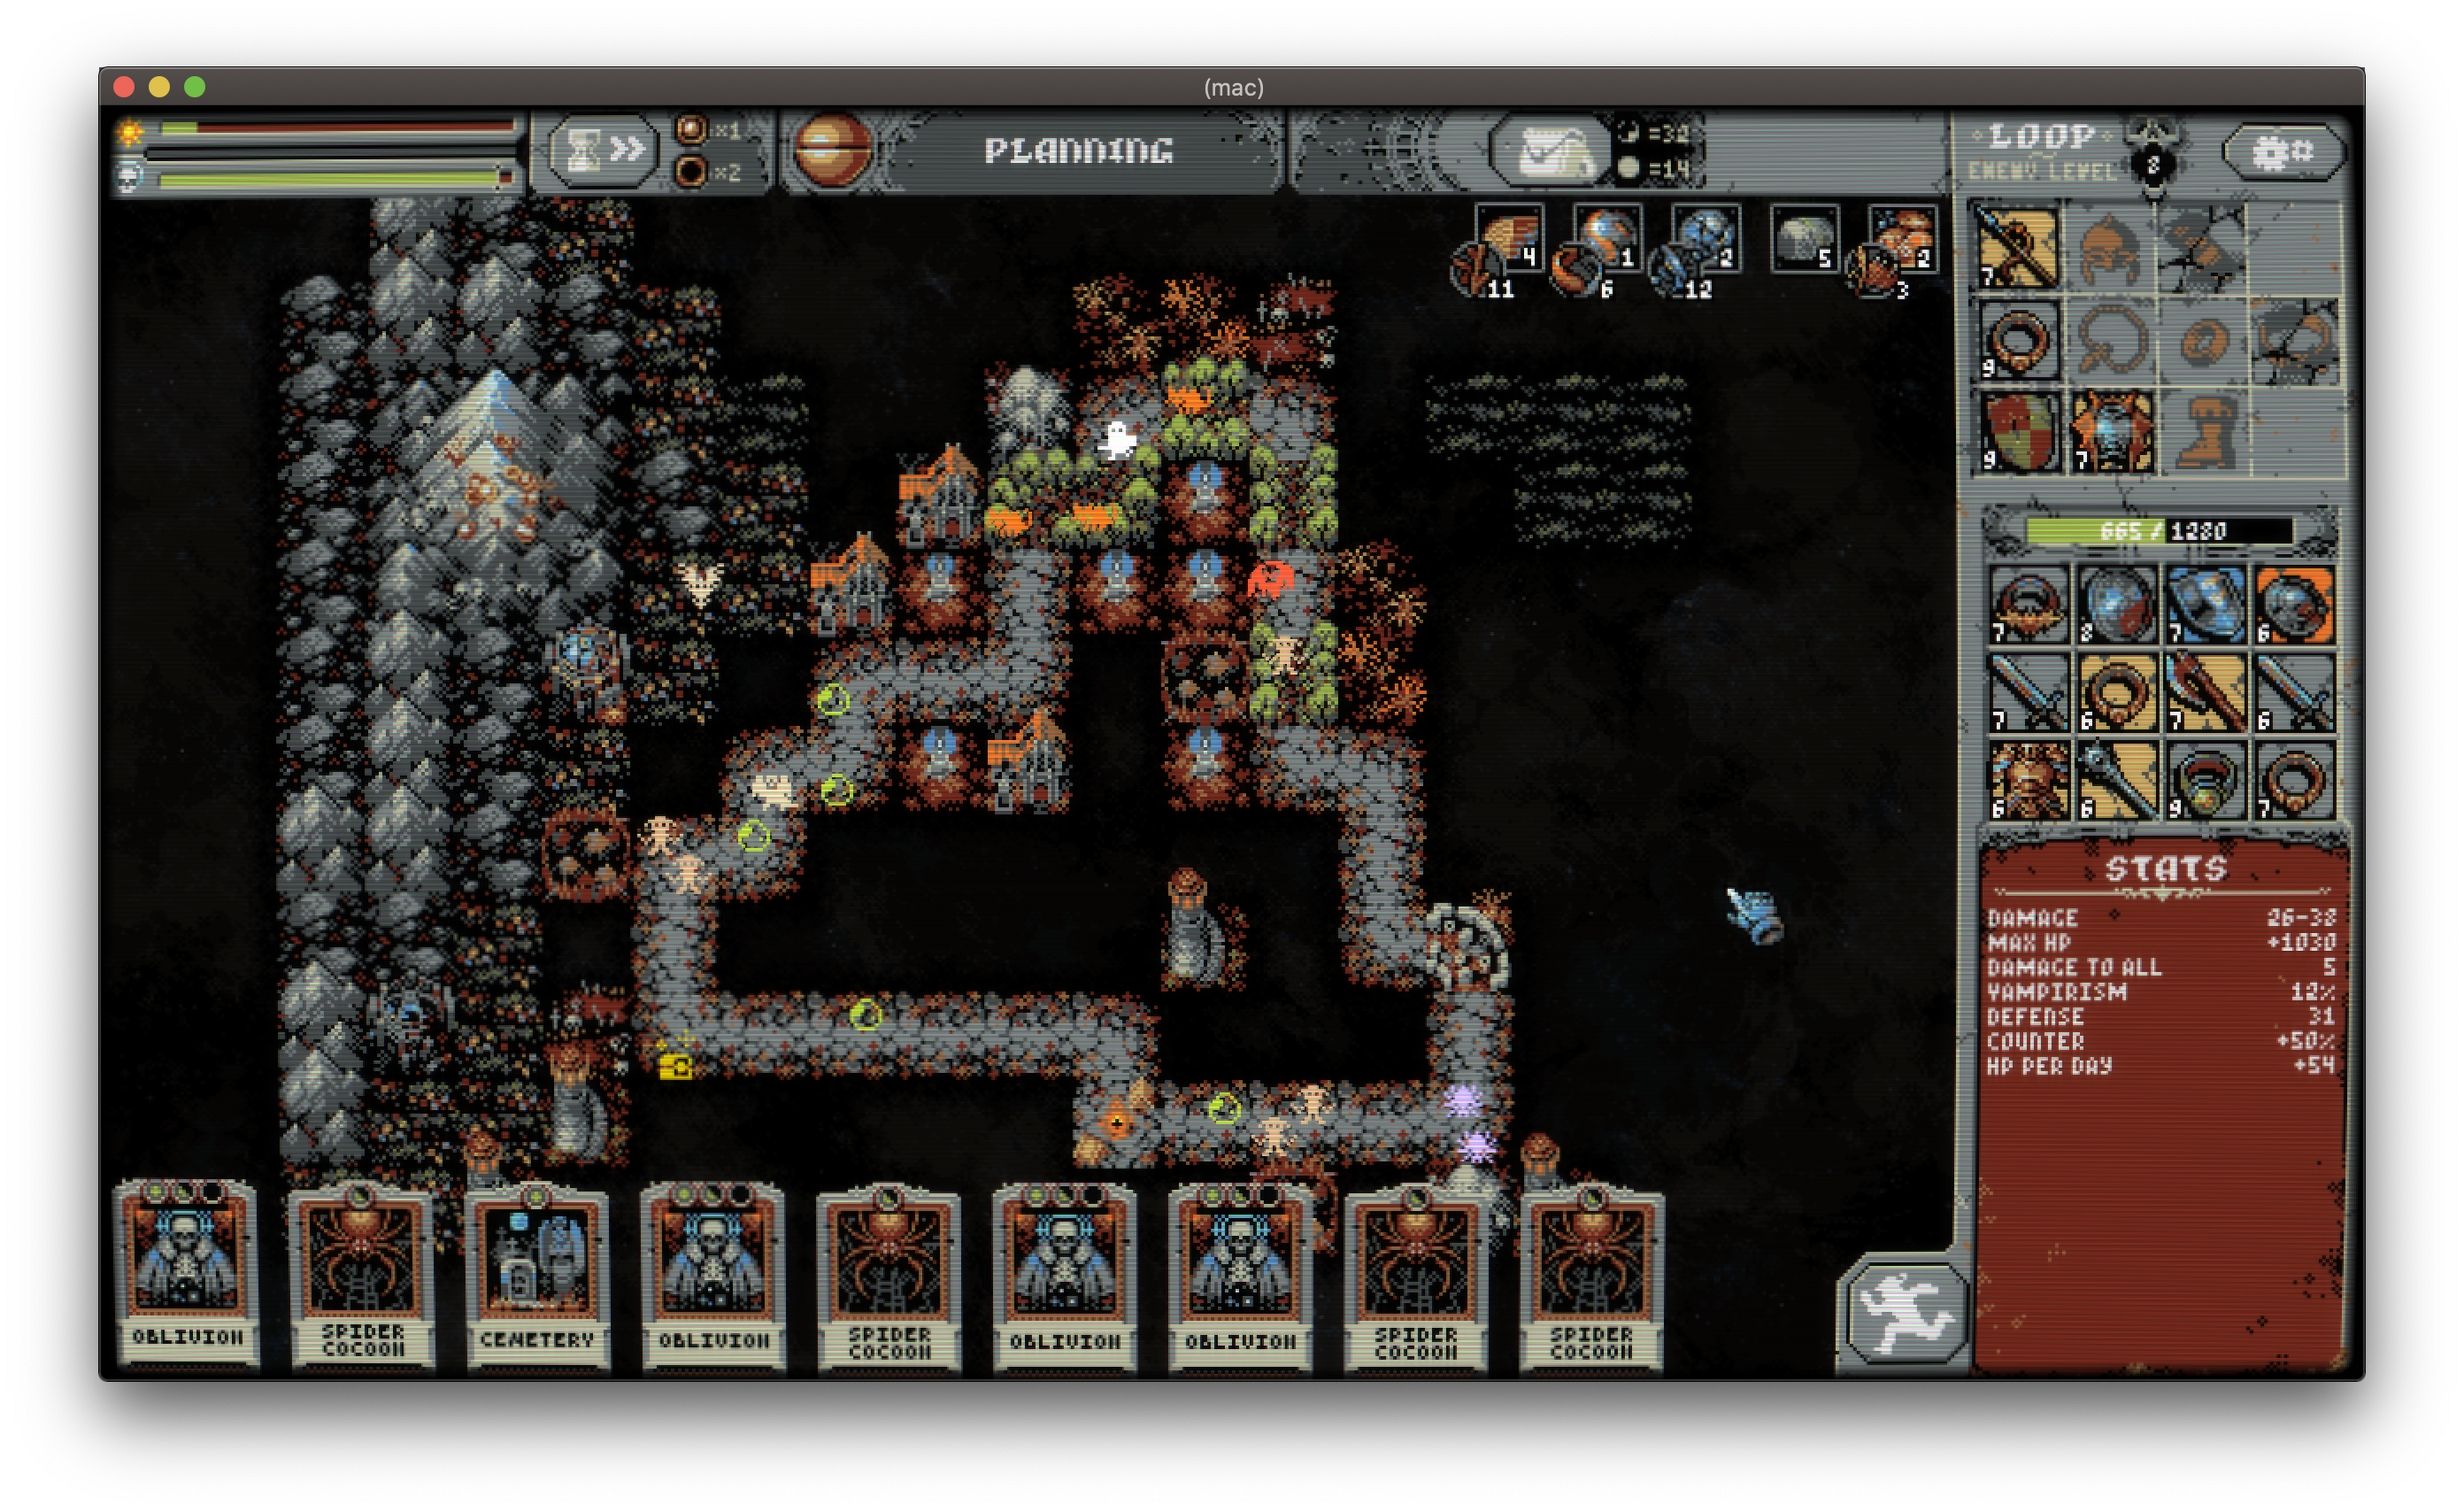 A screenshot showing an irregular-shaped loop surrounded by game tiles